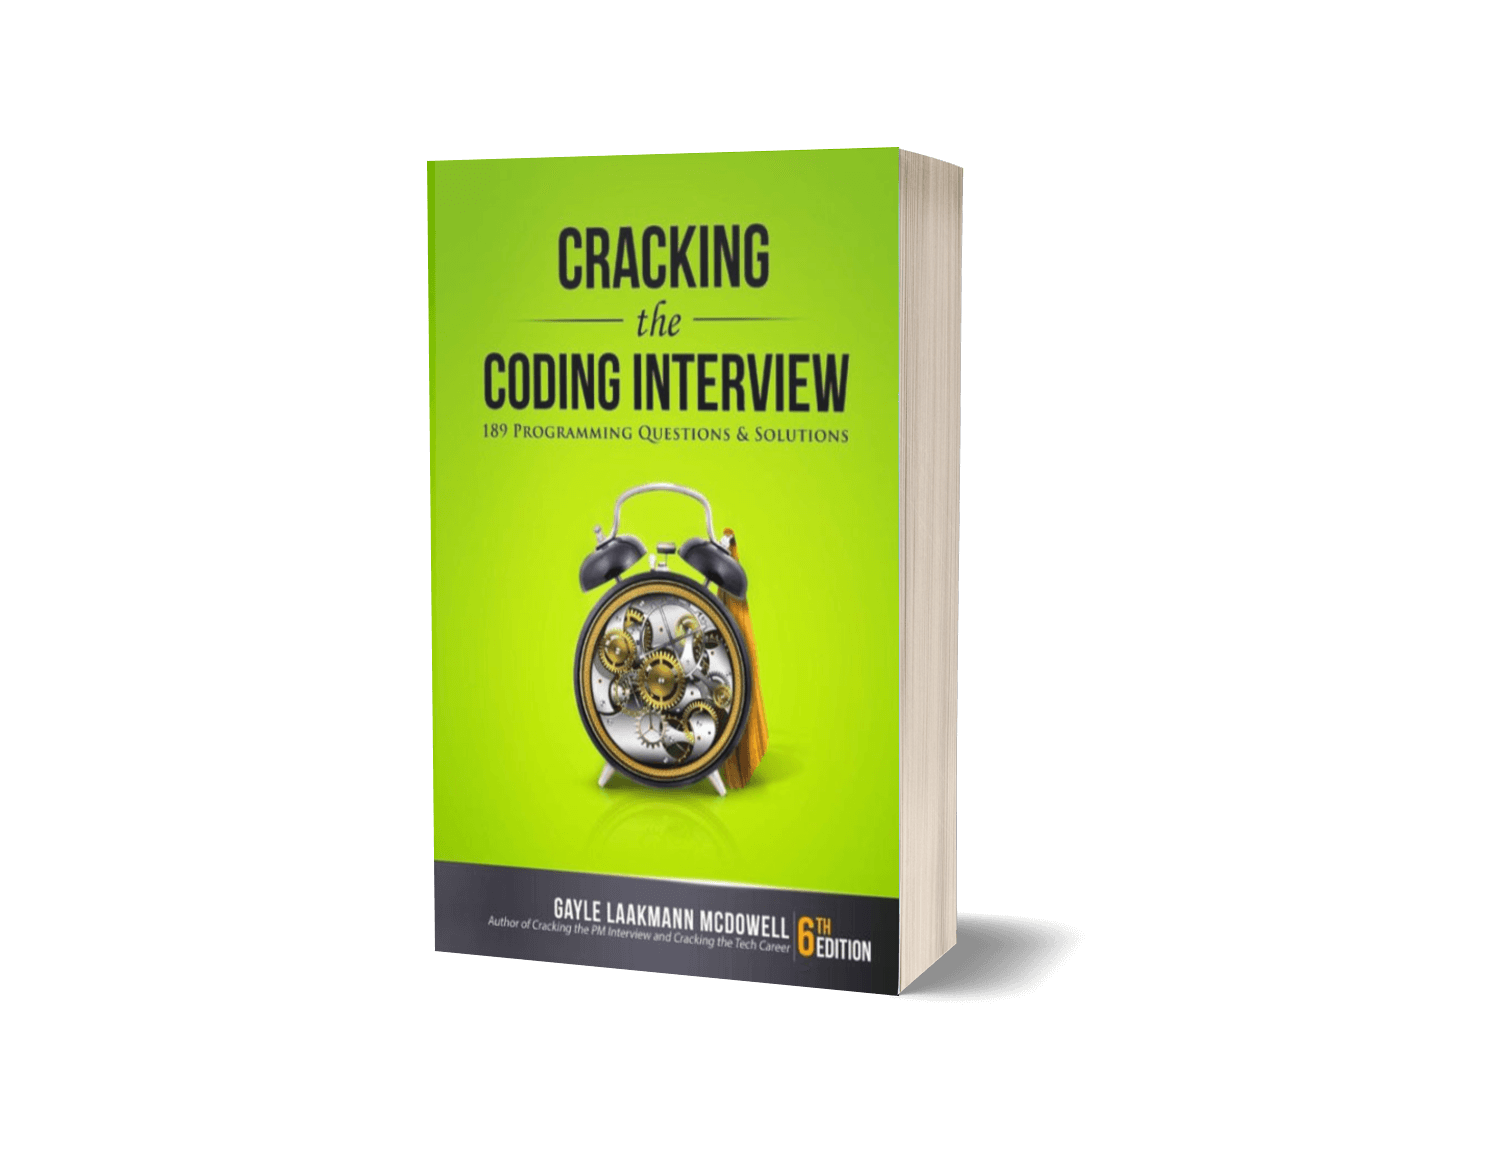 Most Complete Code Interview Guide: Cracking the Code Interview - Cracking the Code Interview is a well-regarded book that is monolithic in size: 17 thick chapters of gruelling interviewing questions as well as additional advice: how to behave during interviews, think about Big O notation, and how to handle offers and rejections. What this book has to offer is hard work and big rewards.